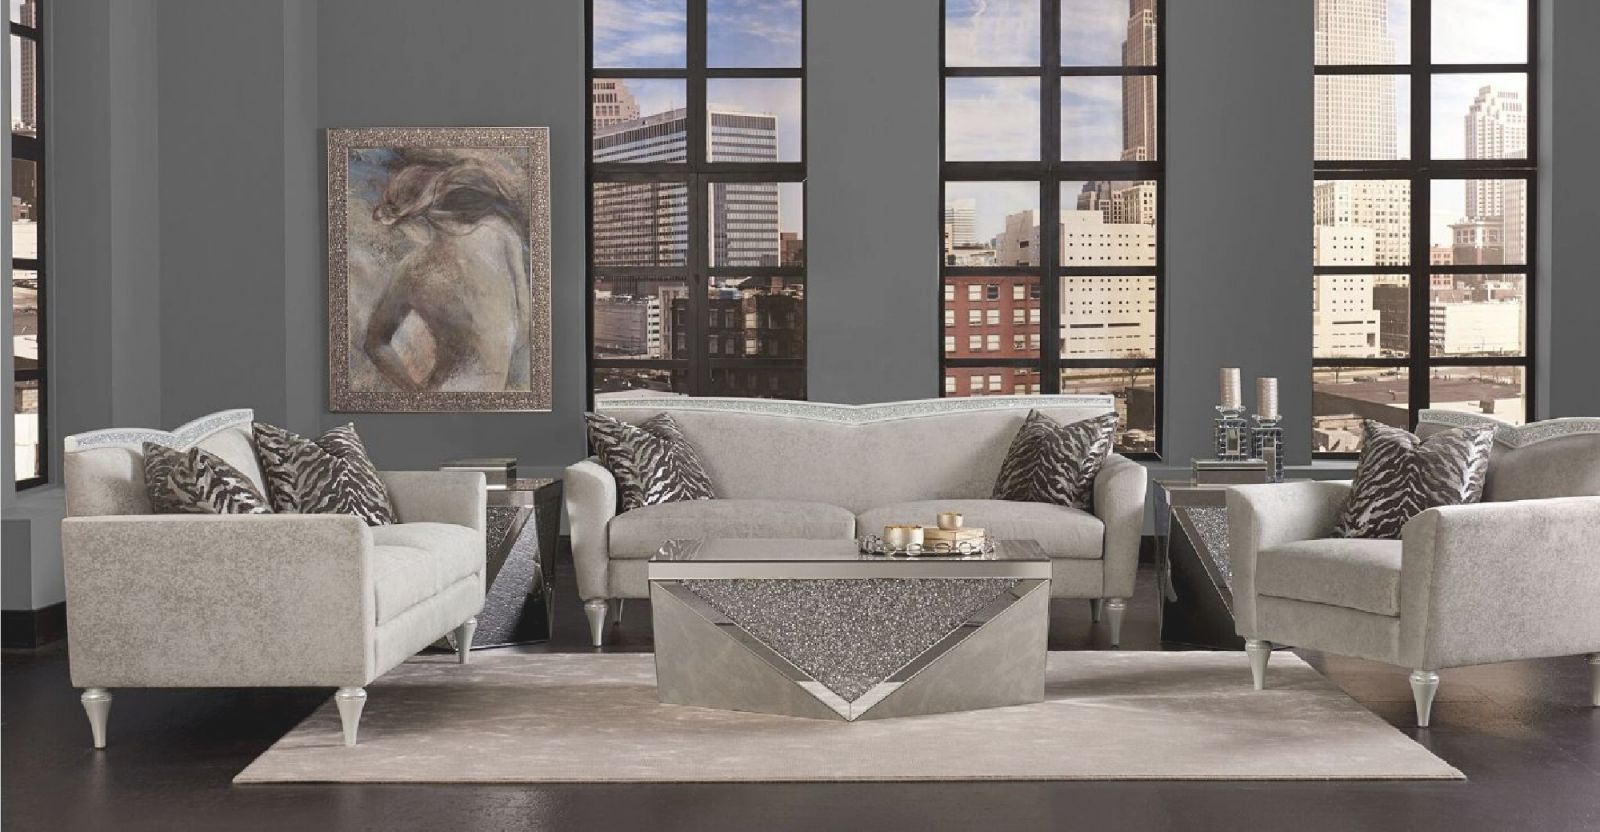 Aico Melrose Plaza V Back Upholstery Sofa Dove Setmichael Amini in Michael Amini Living Room Furniture